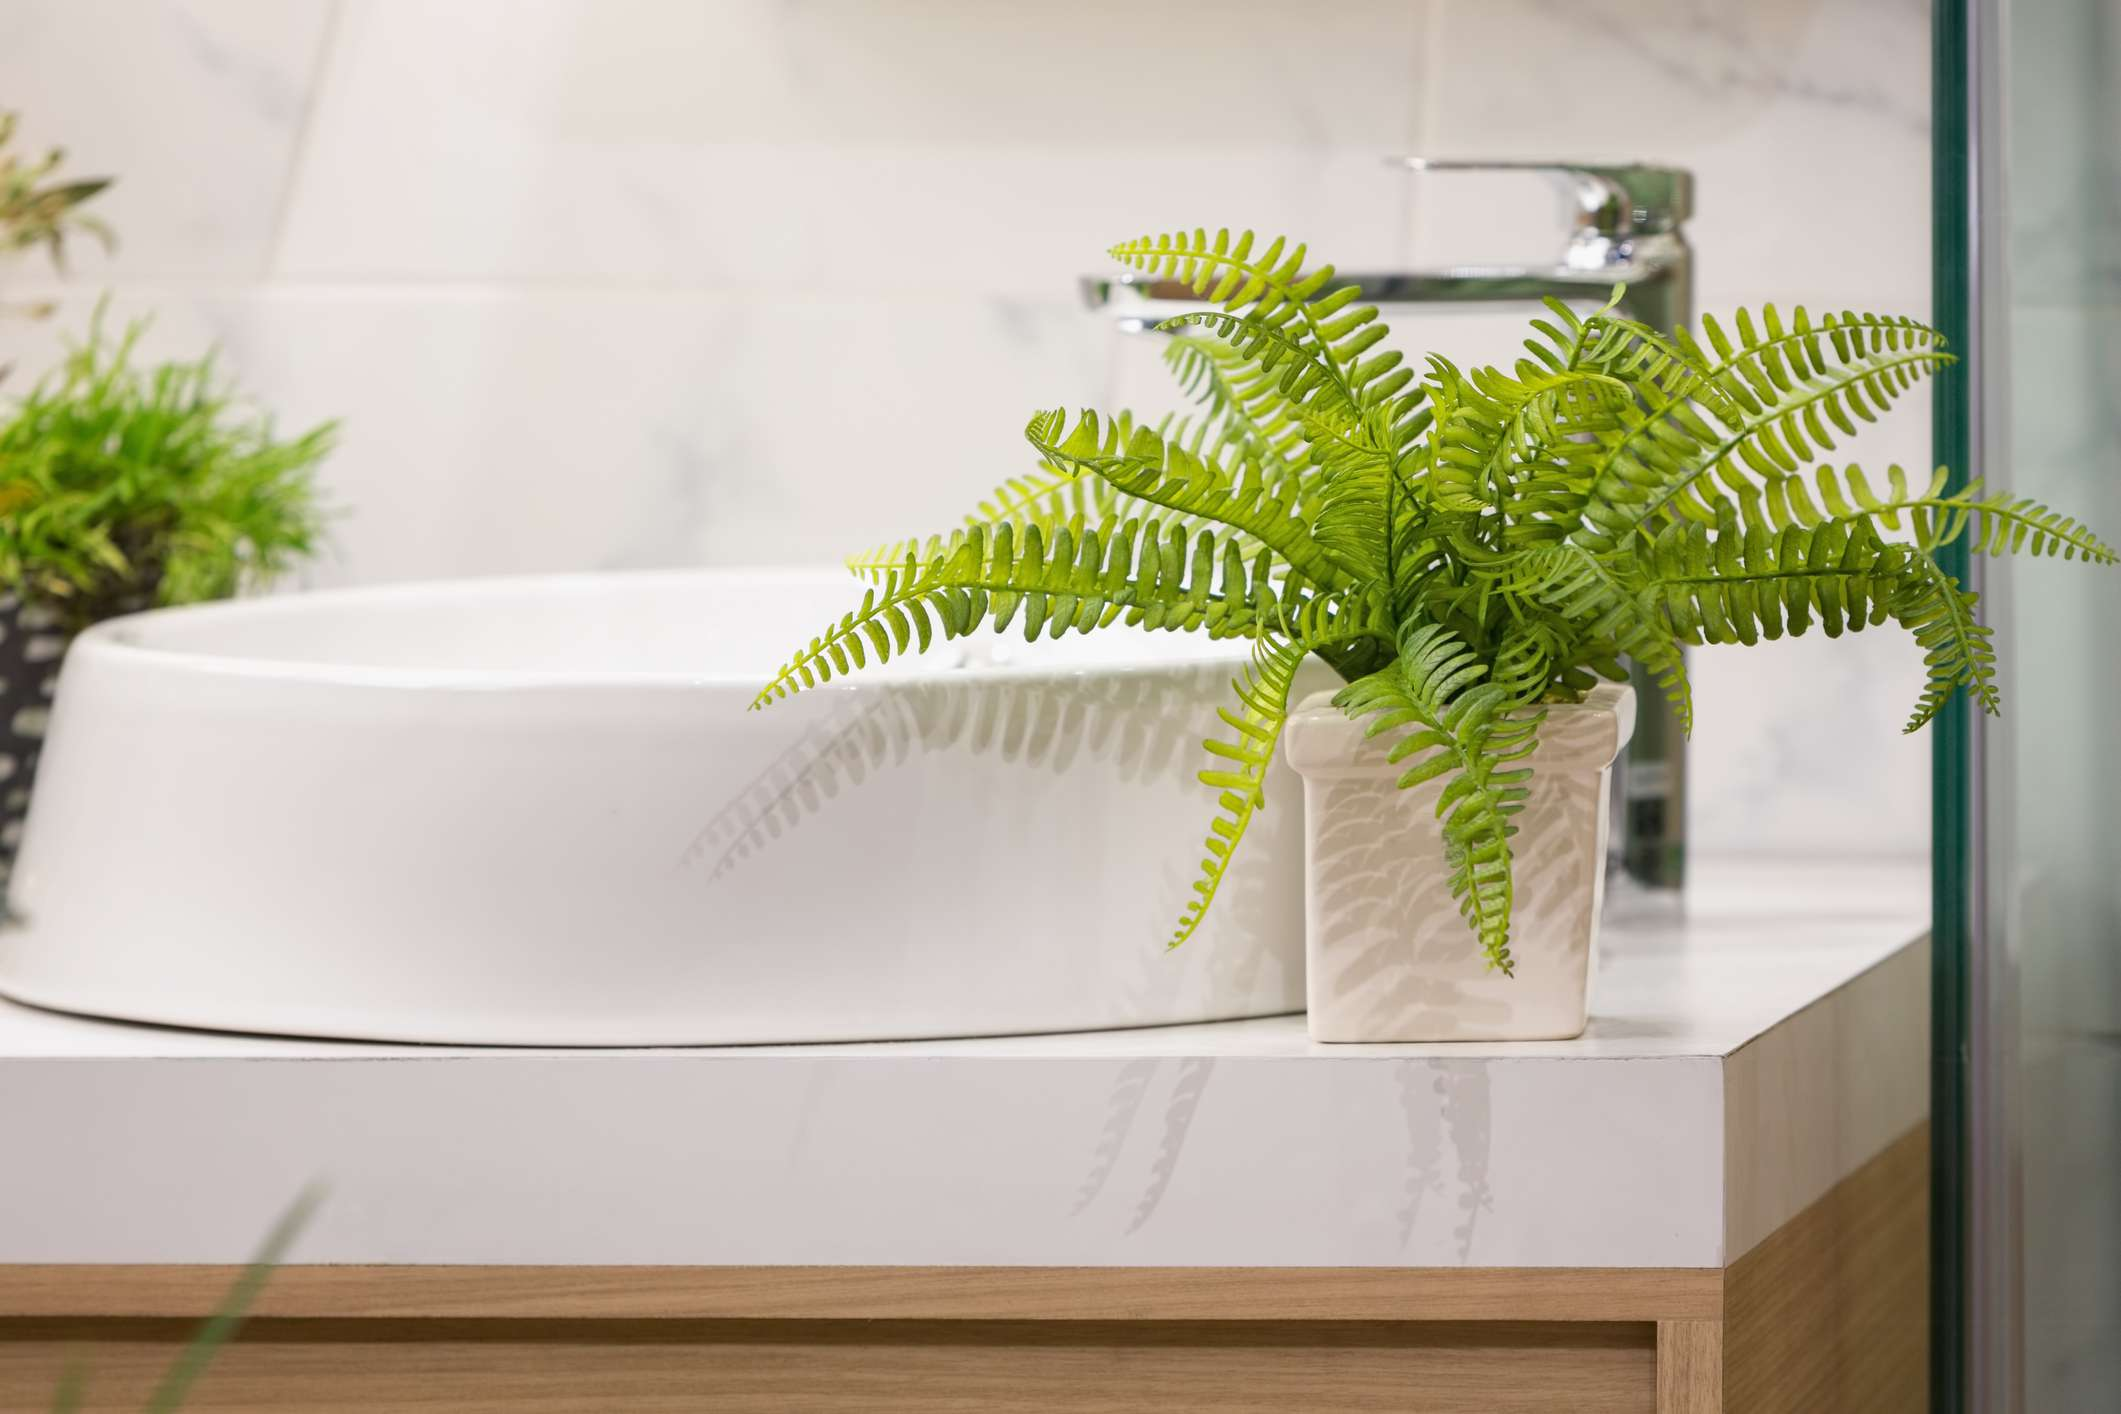 A fern in a square, white pot sits next to a sink